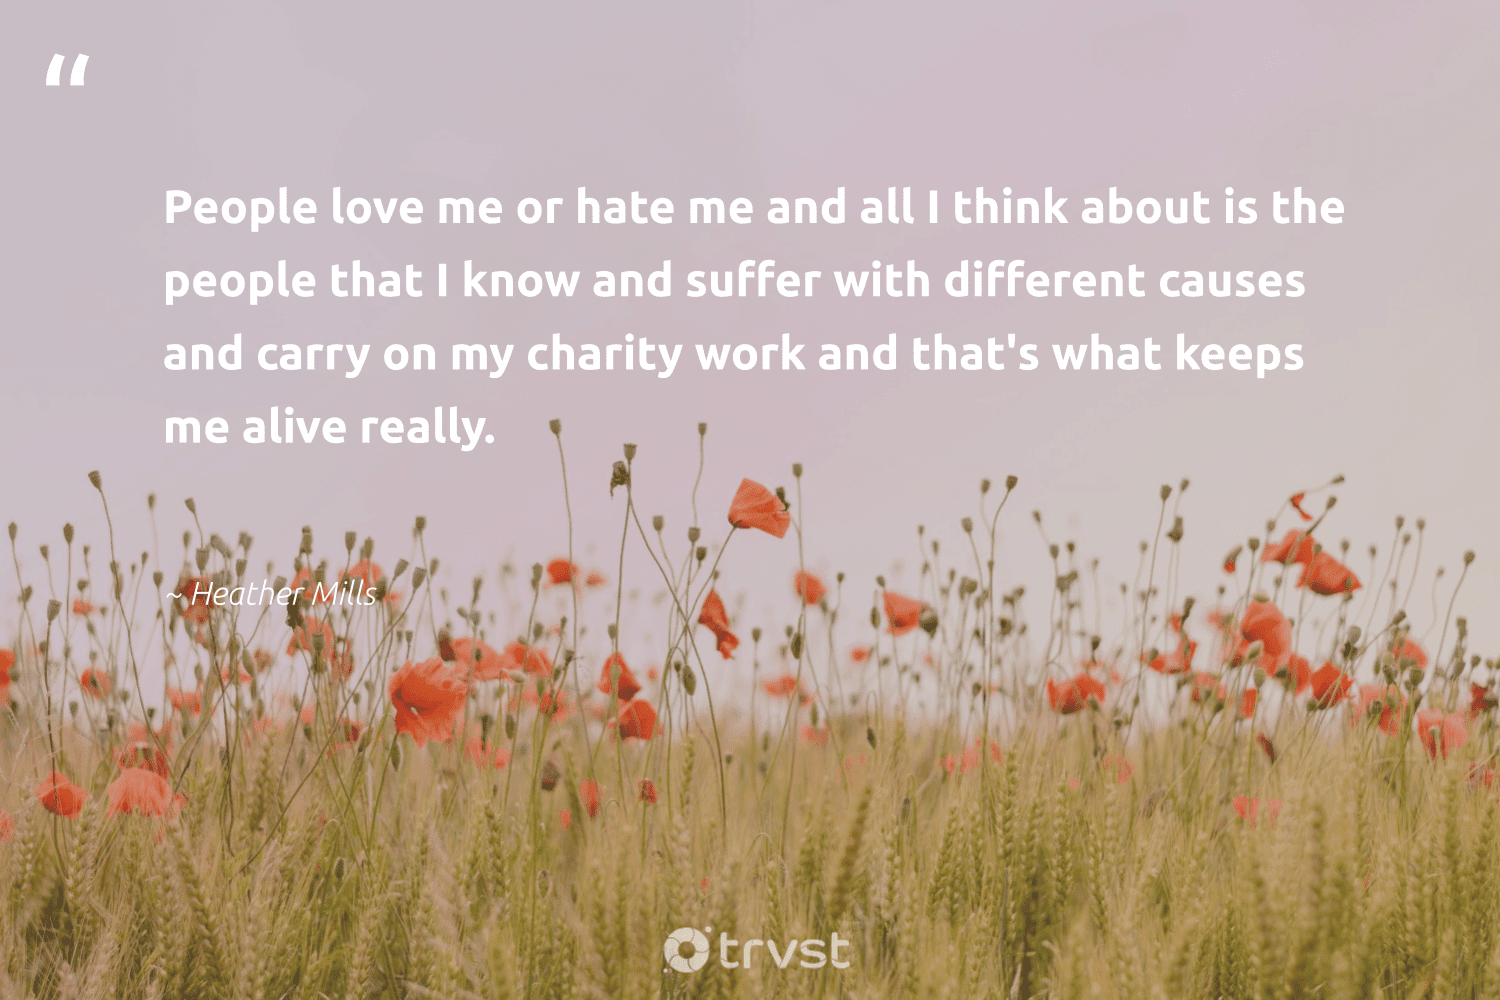 """""""People love me or hate me and all I think about is the people that I know and suffer with different causes and carry on my charity work and that's what keeps me alive really.""""  - Heather Mills #trvst #quotes #Charity #love #causes #cause #makeadifference #communities #socialchange #foundation #dogood #giveback"""